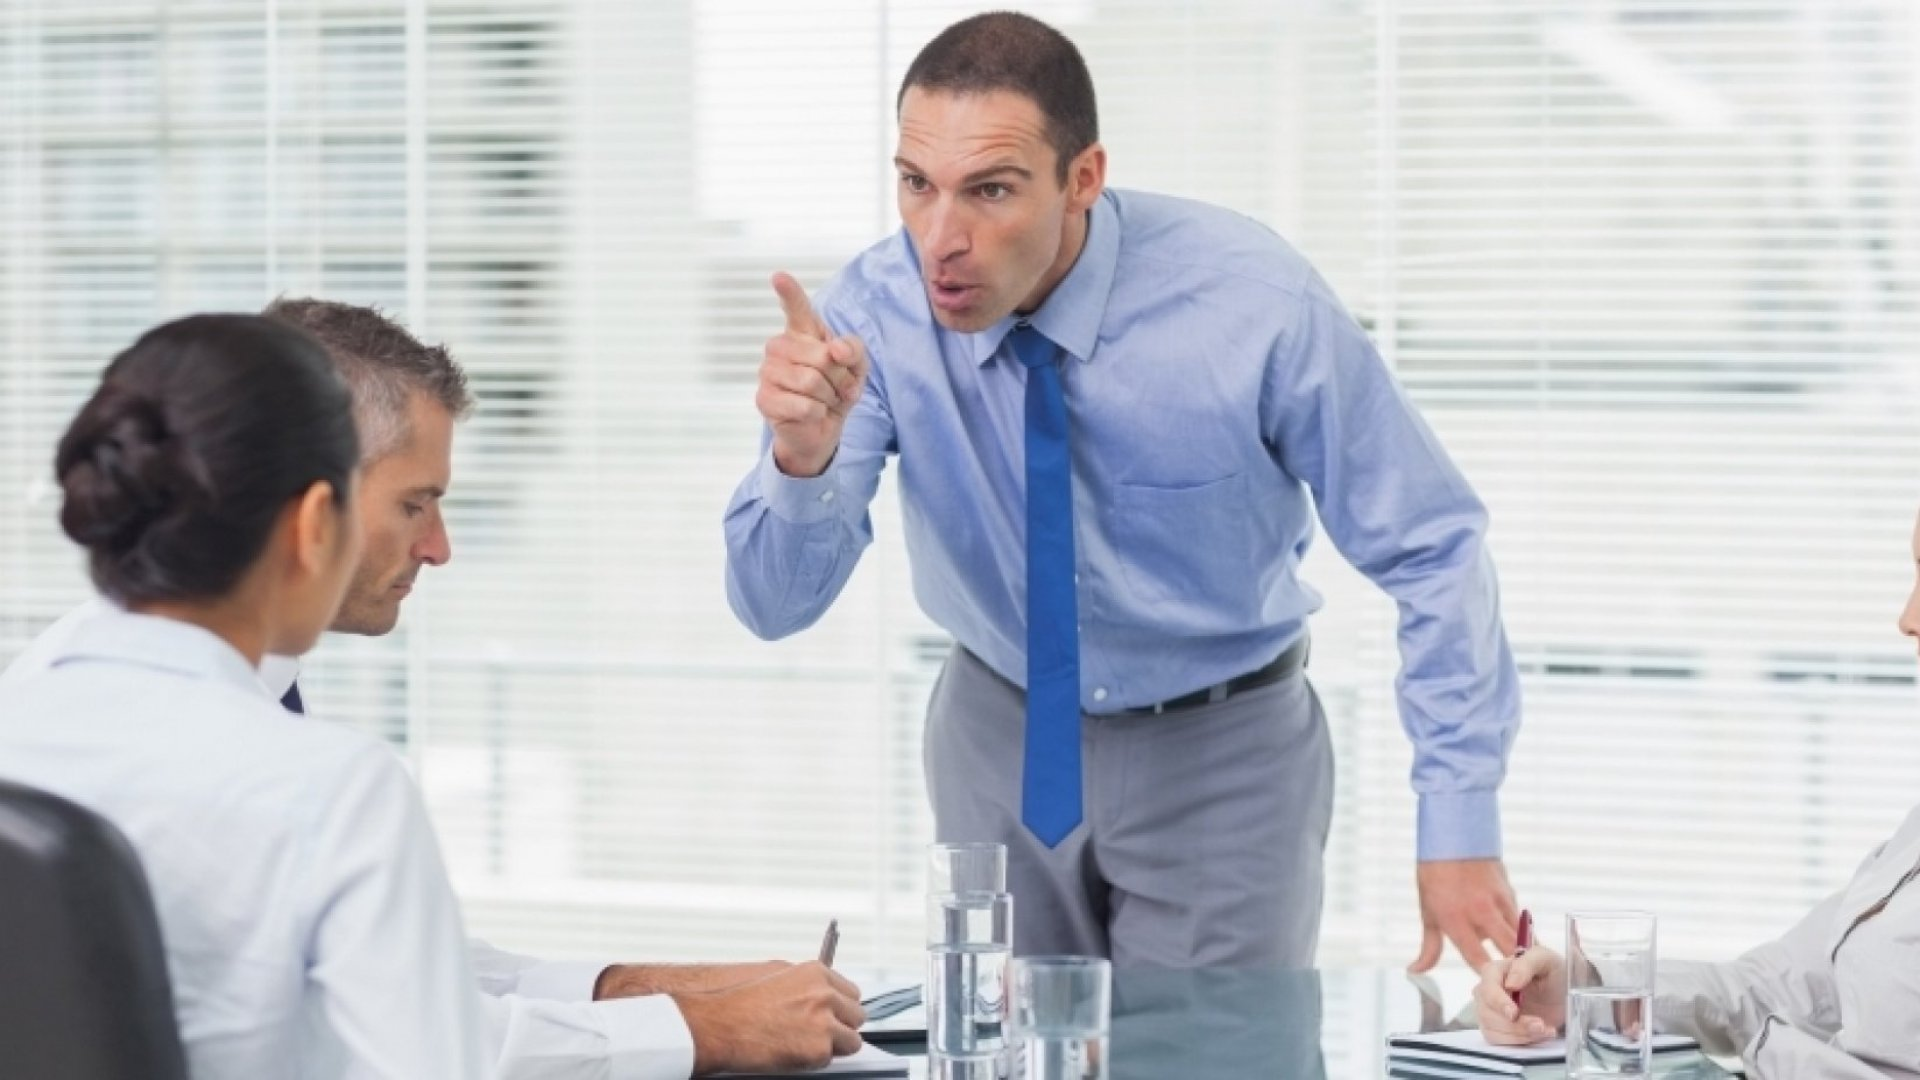 7 Steps to Taking Harsh Criticism From Your Boss